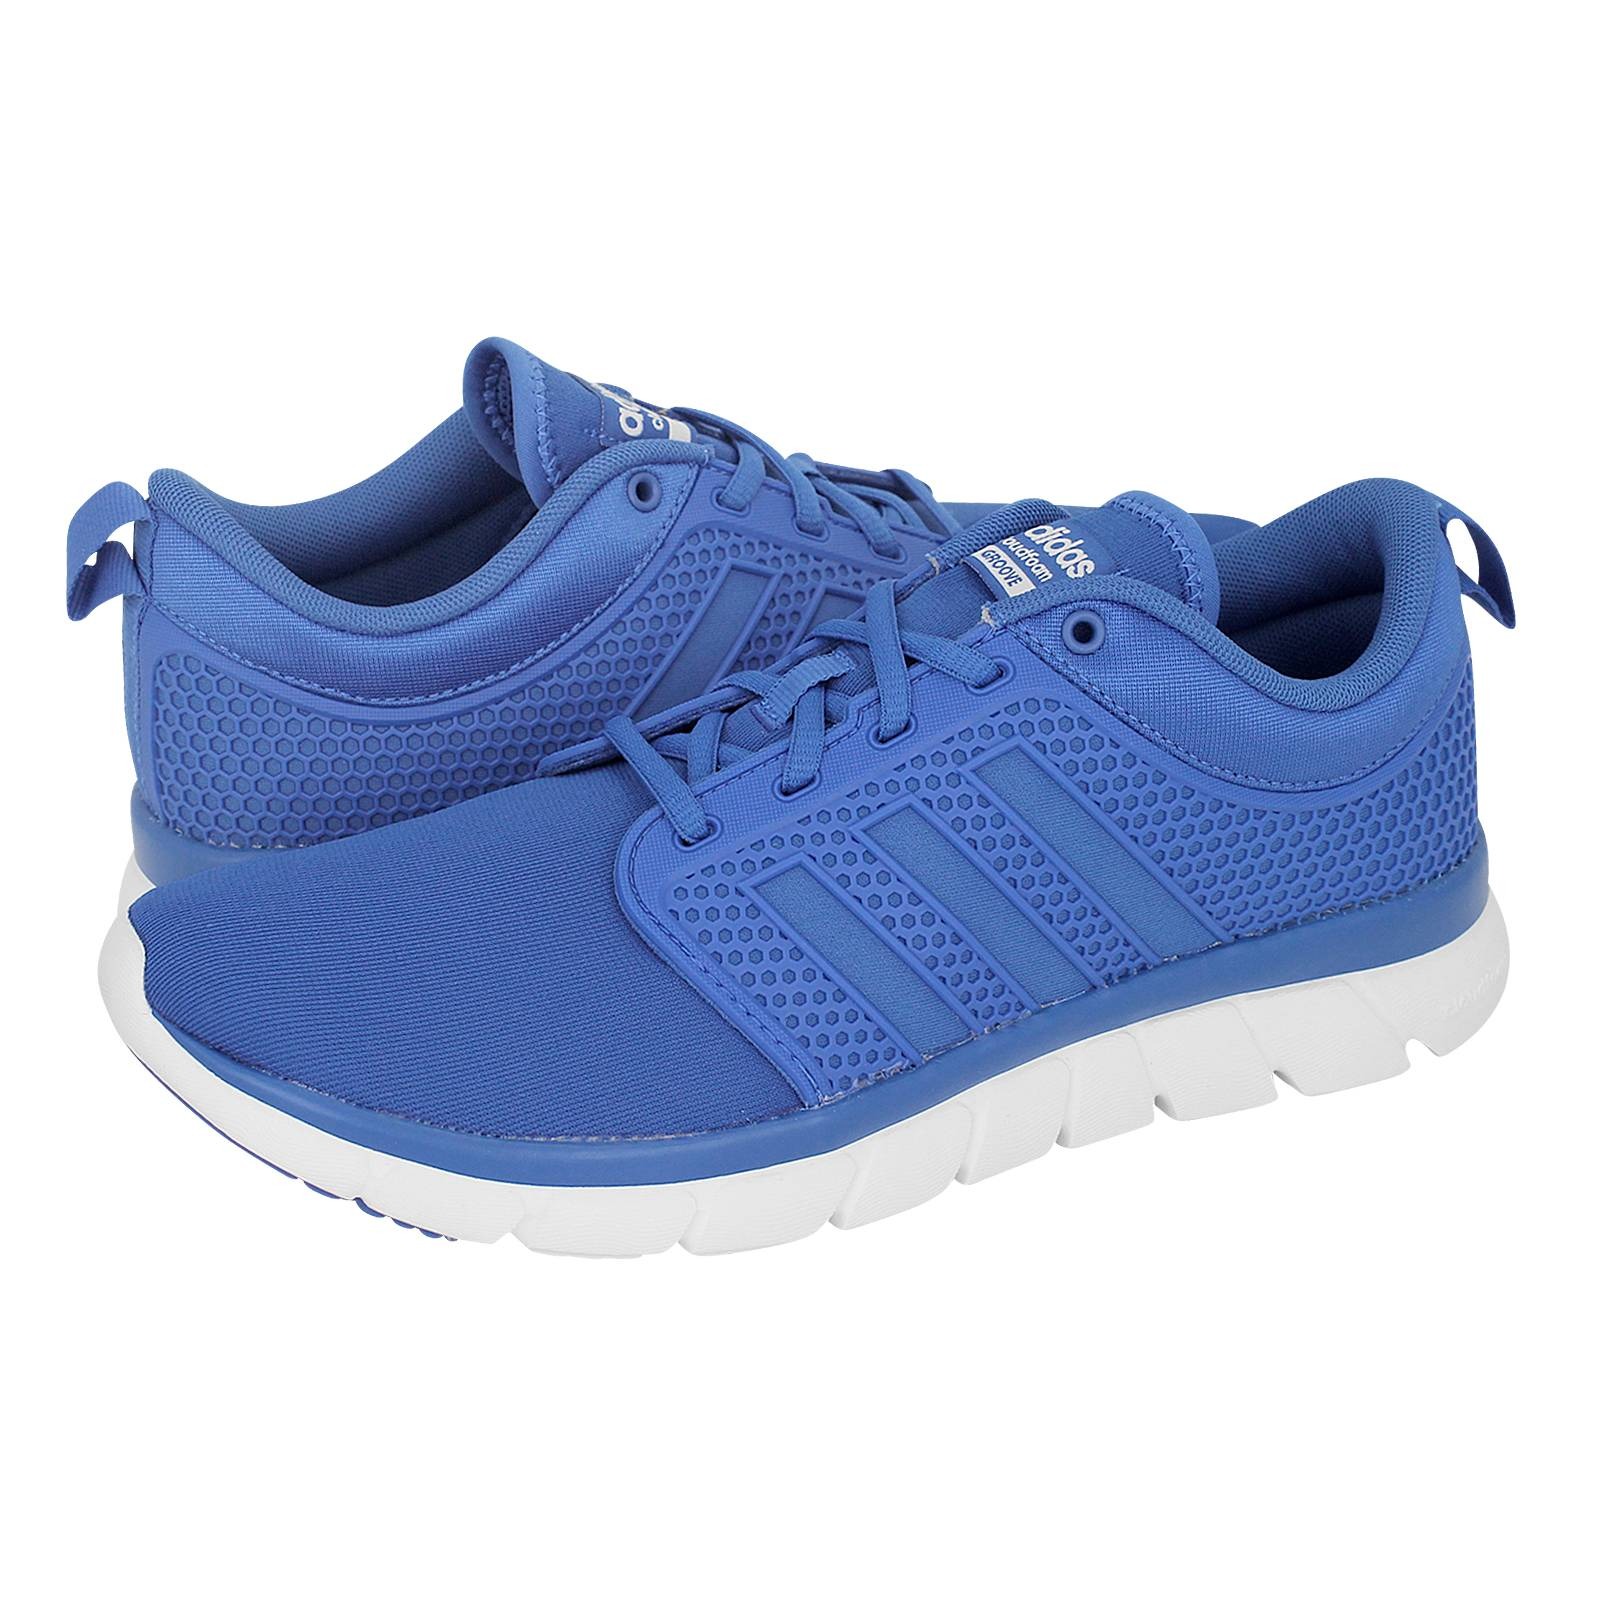 Adidas Cloudfoam Groove athletic shoes